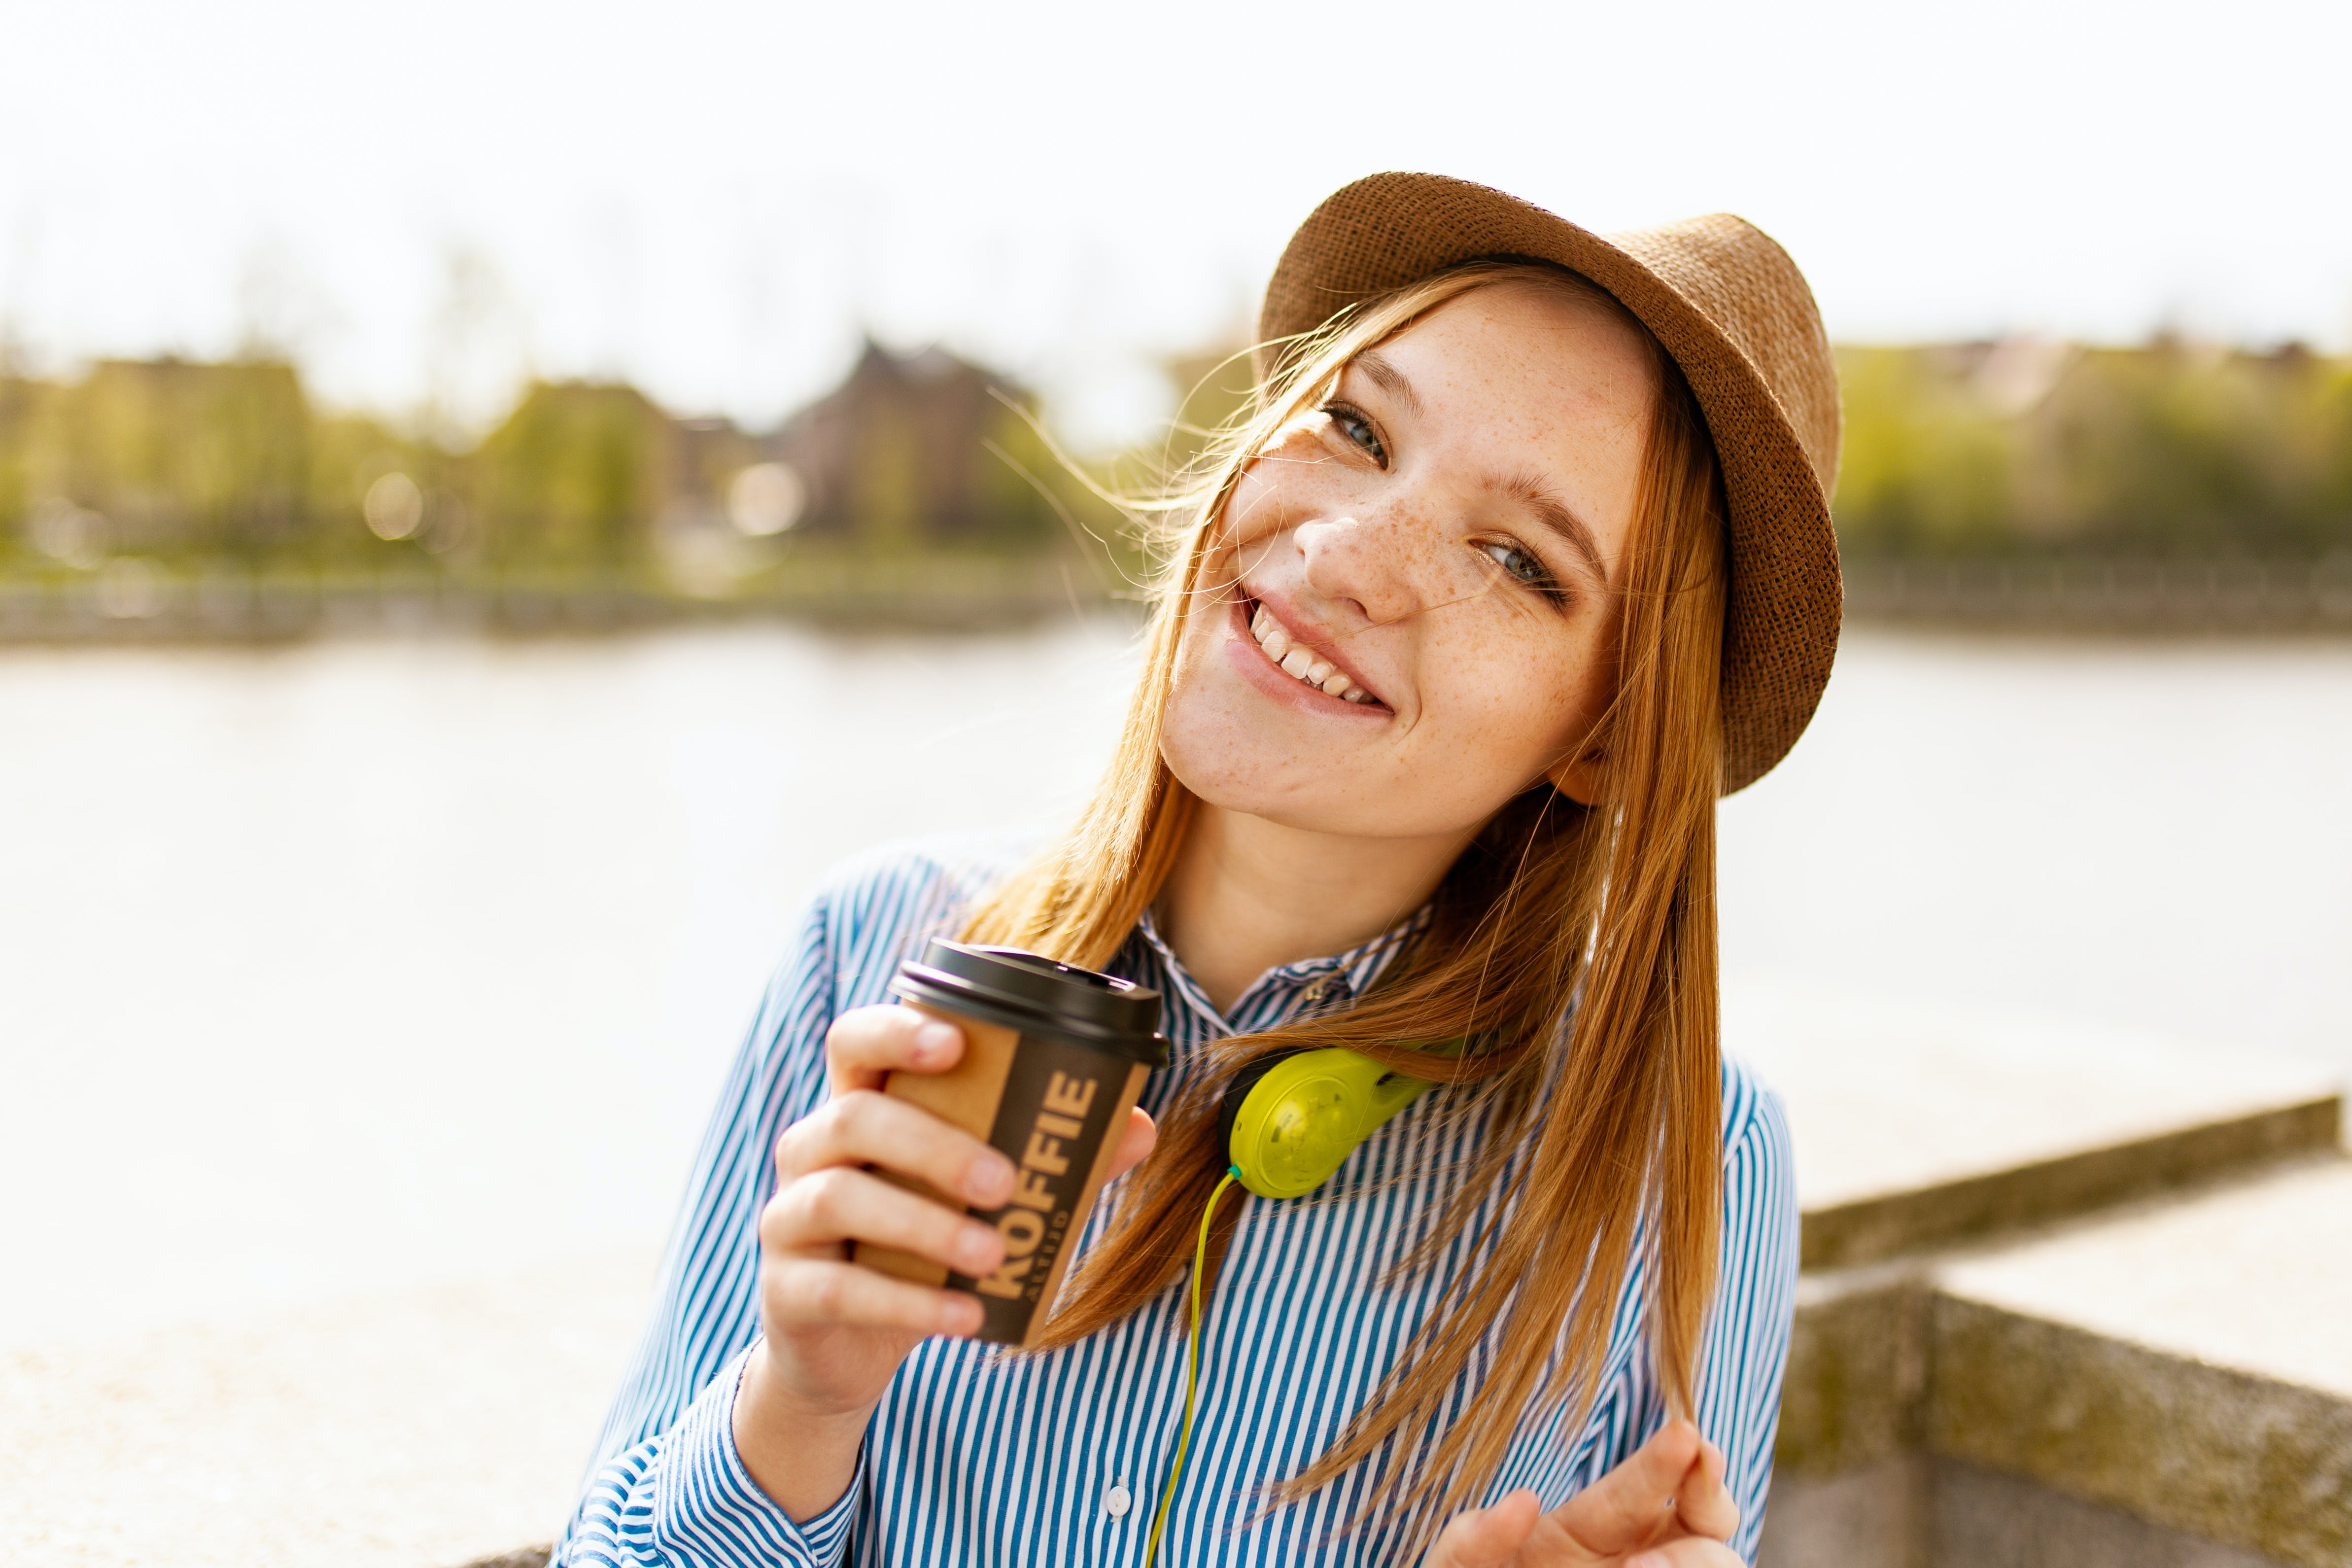 Woman Holding Cup While Taking Photo